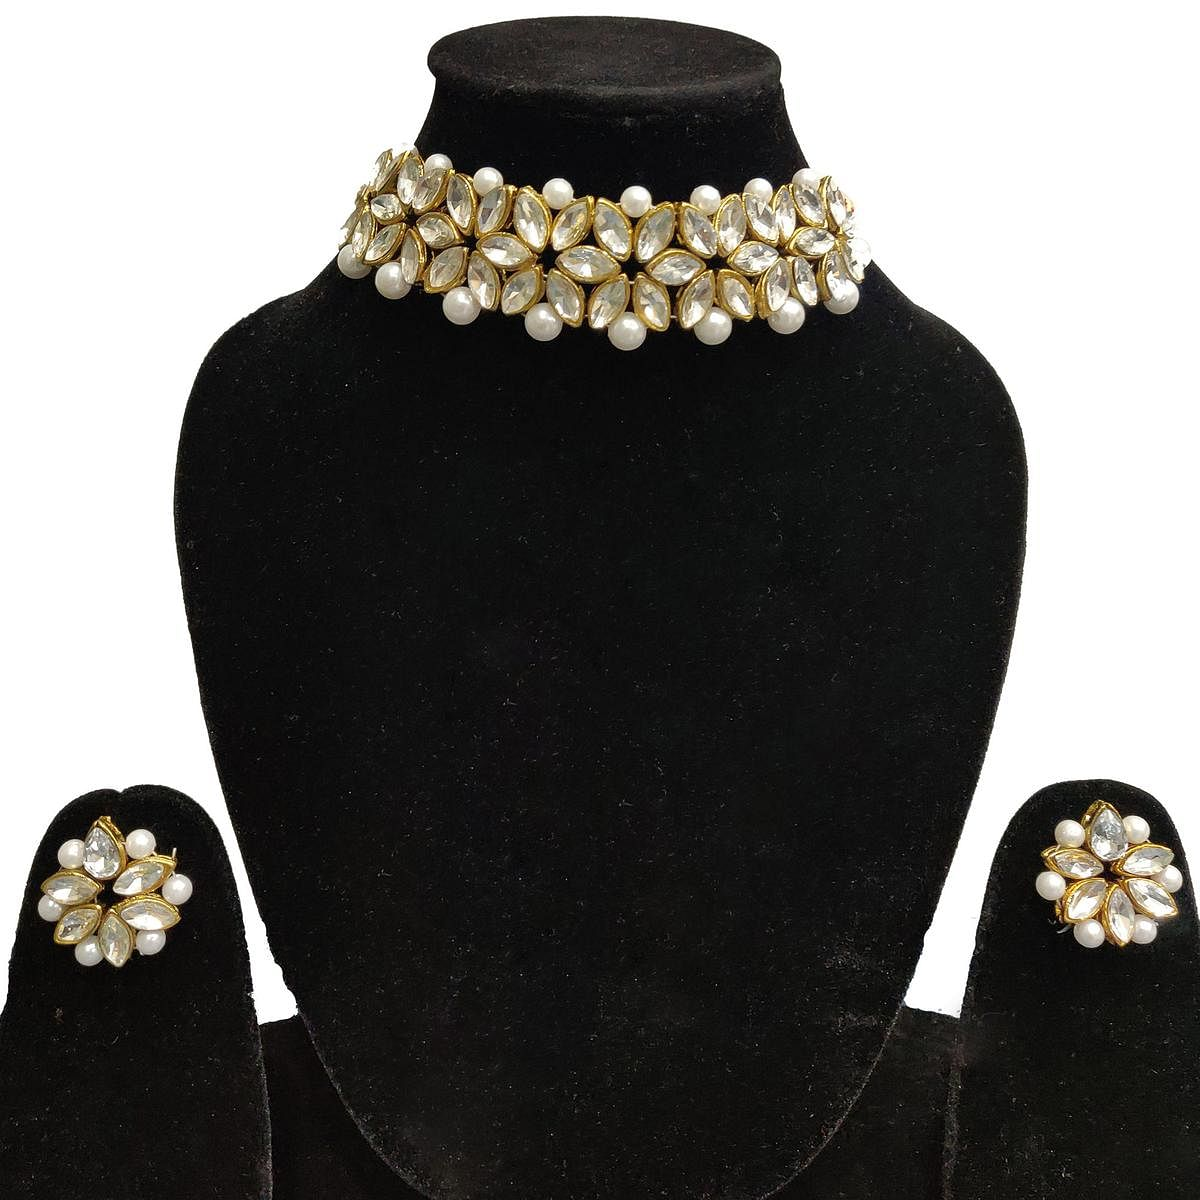 Zaffre Collections - White Crystal Choker with Earrings for Women